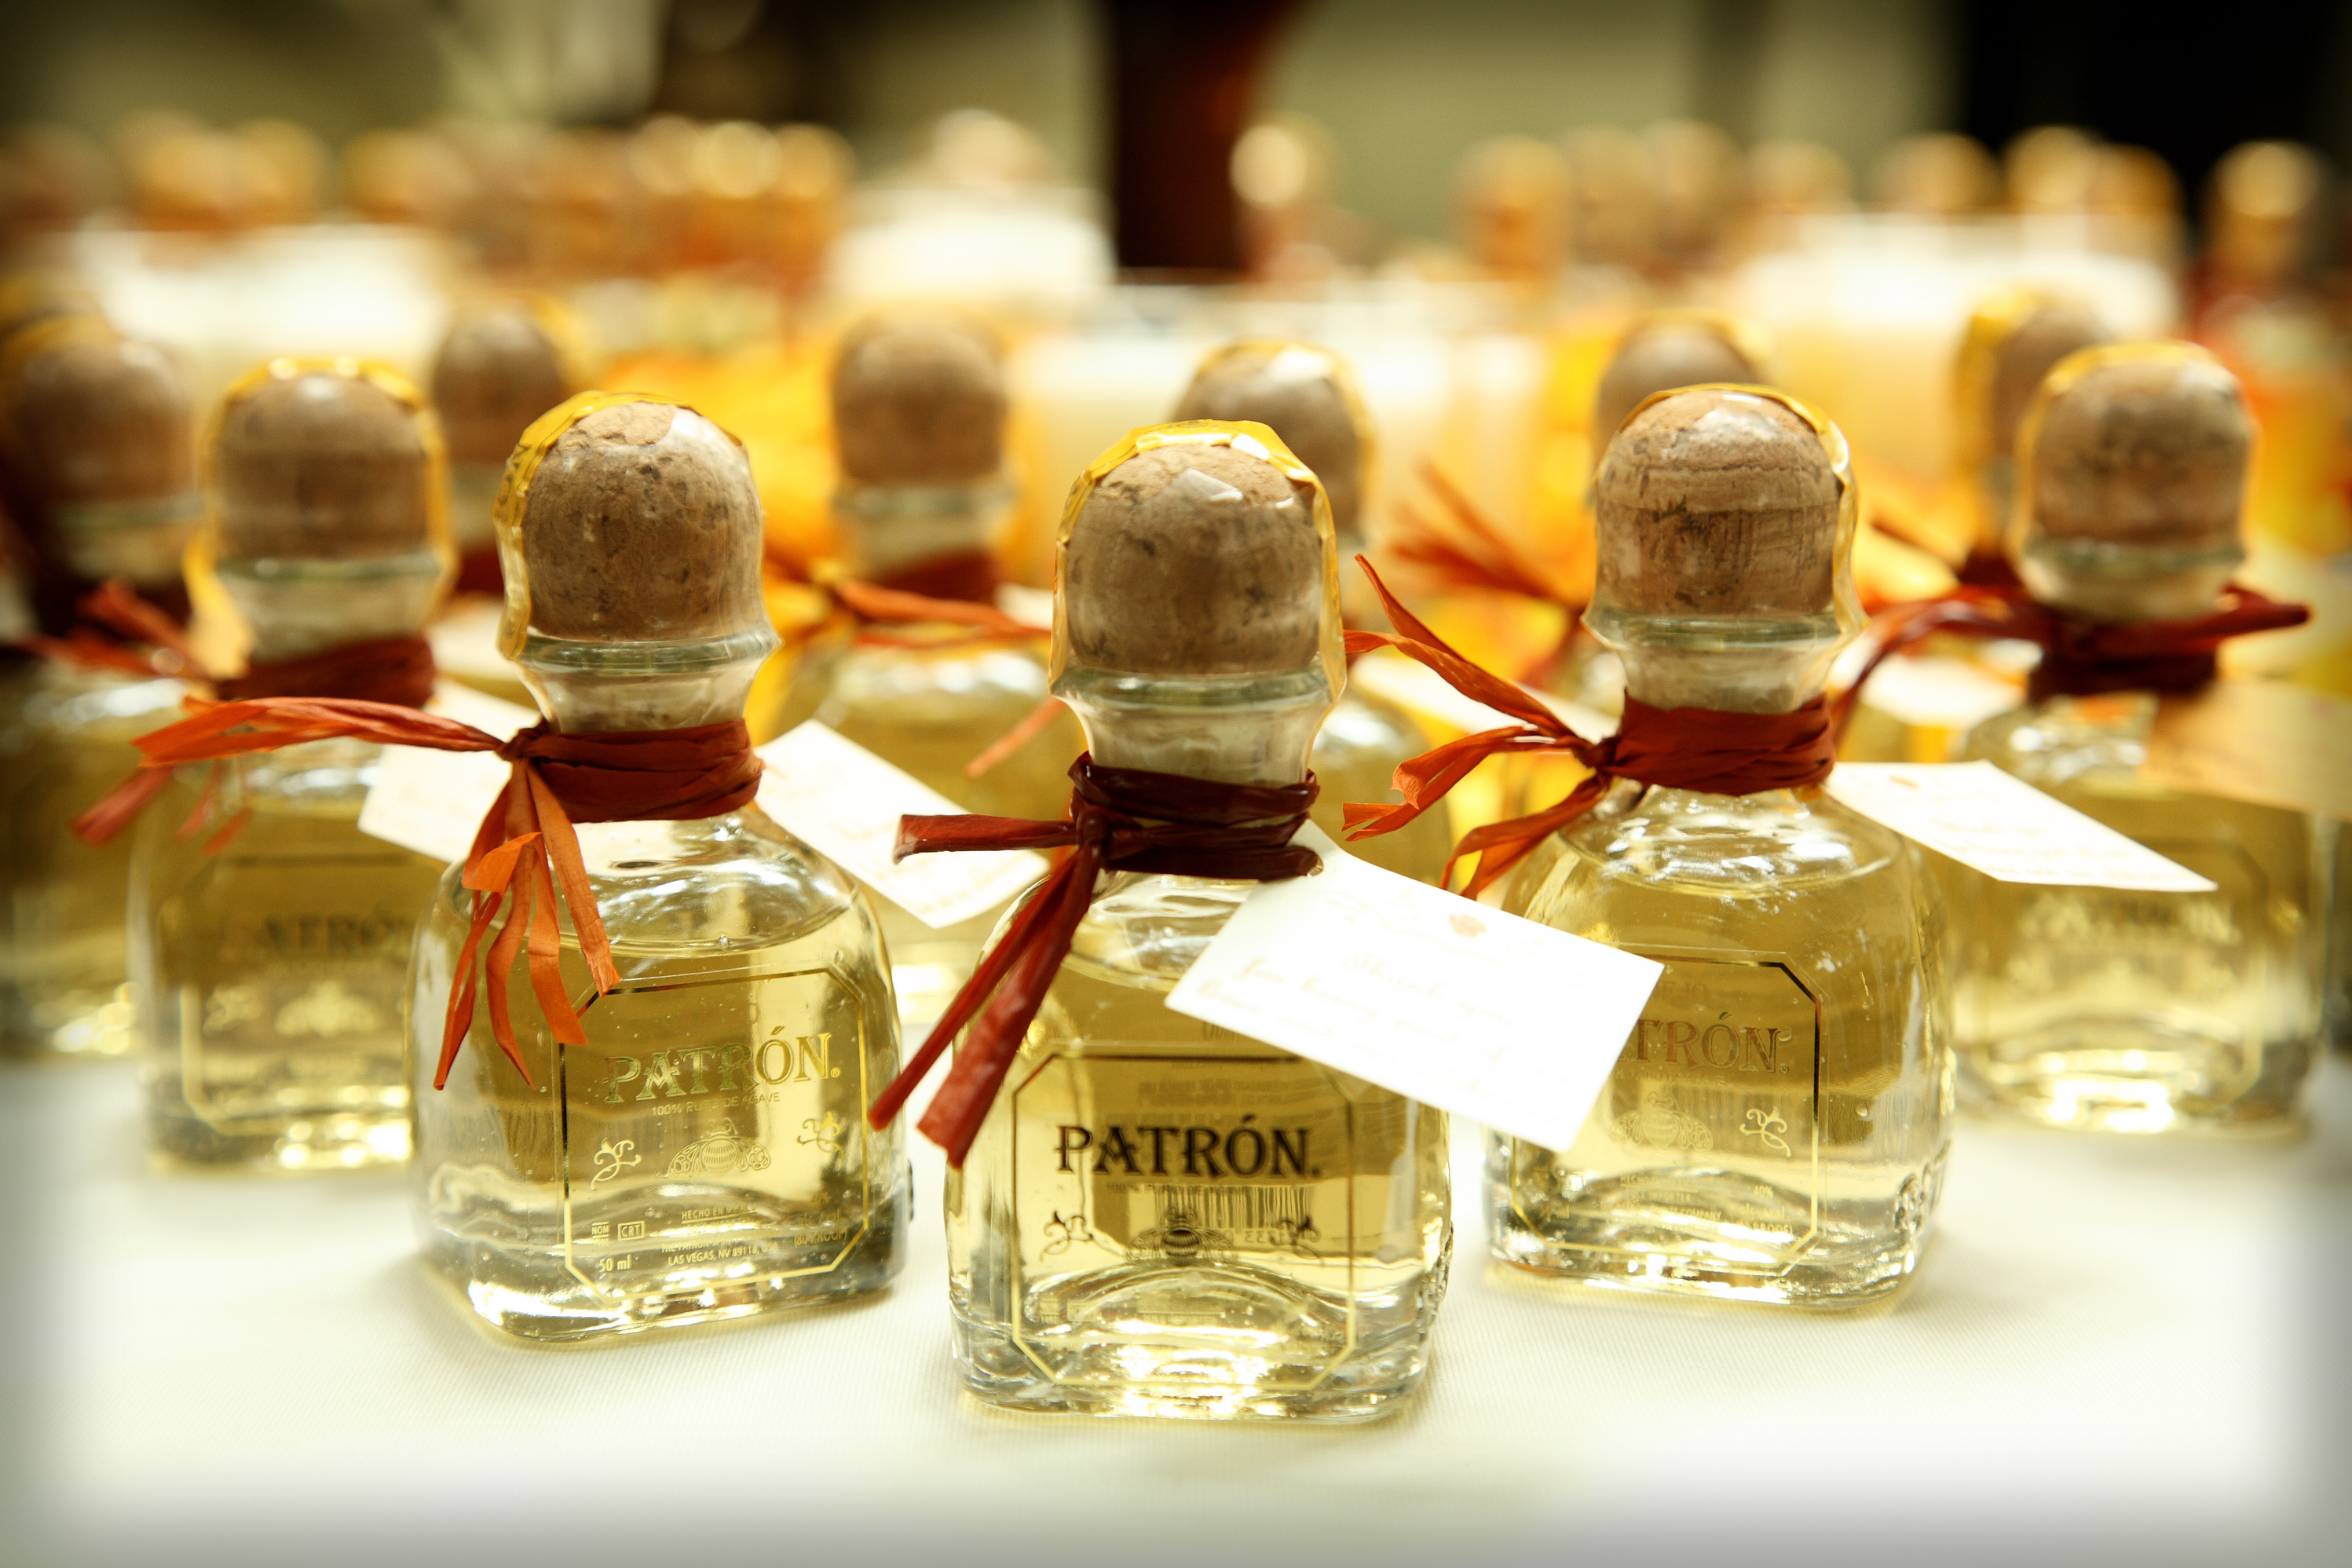 Wedding Gift Ideas Alcohol : ... , Favors & Gifts, Favors, Wedding, Alcohol, Forever true photography